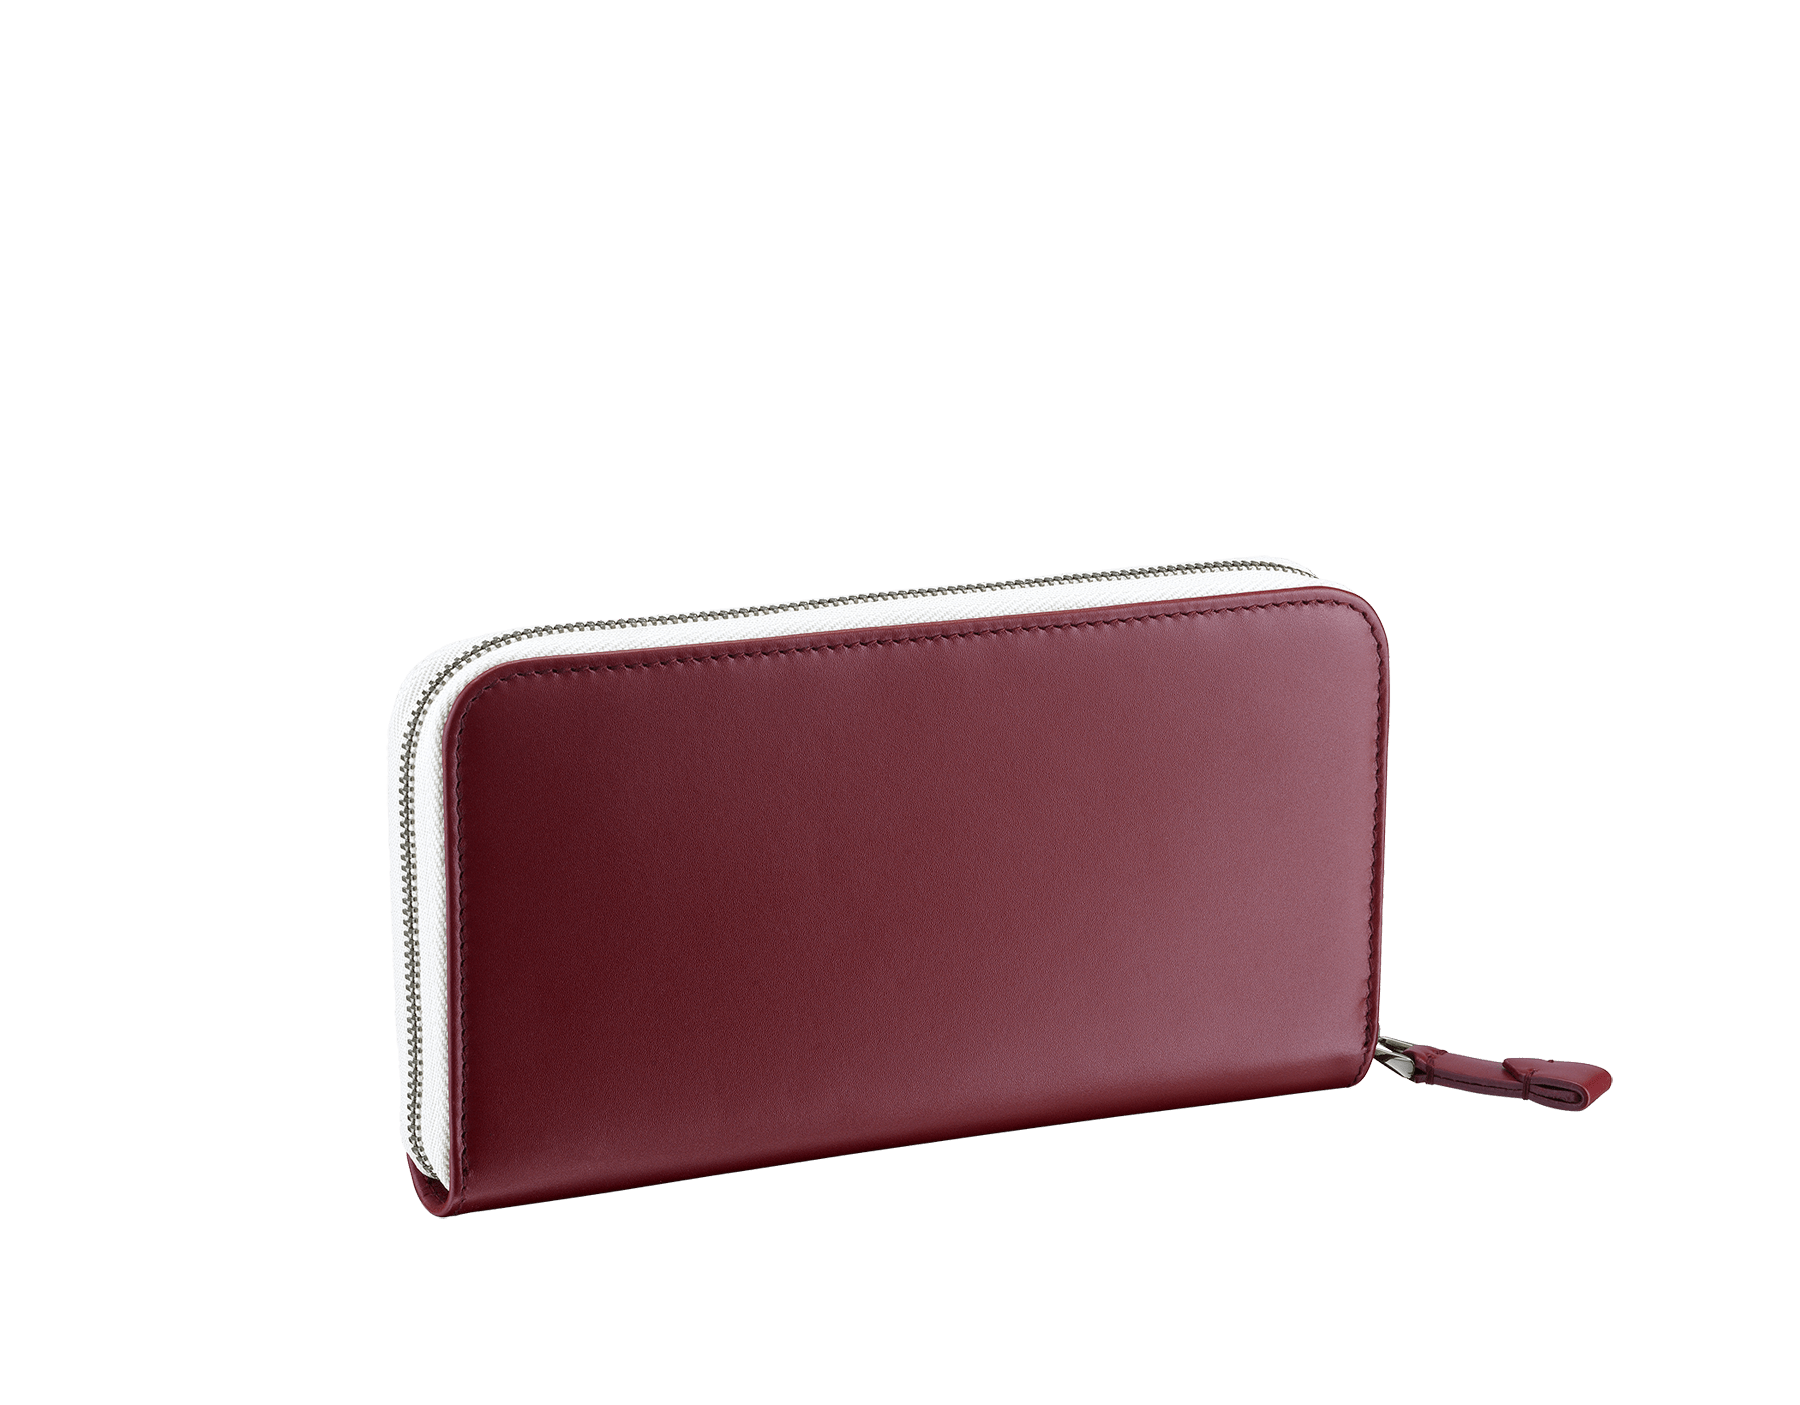 Serpenti Scaglie men's zipped wallet in white agate grazed calf leather and roman garnet calf leather. Bvlgari logo engraved on the hexagonal scaglie metal plate finished in dark ruthenium. 288344 image 3